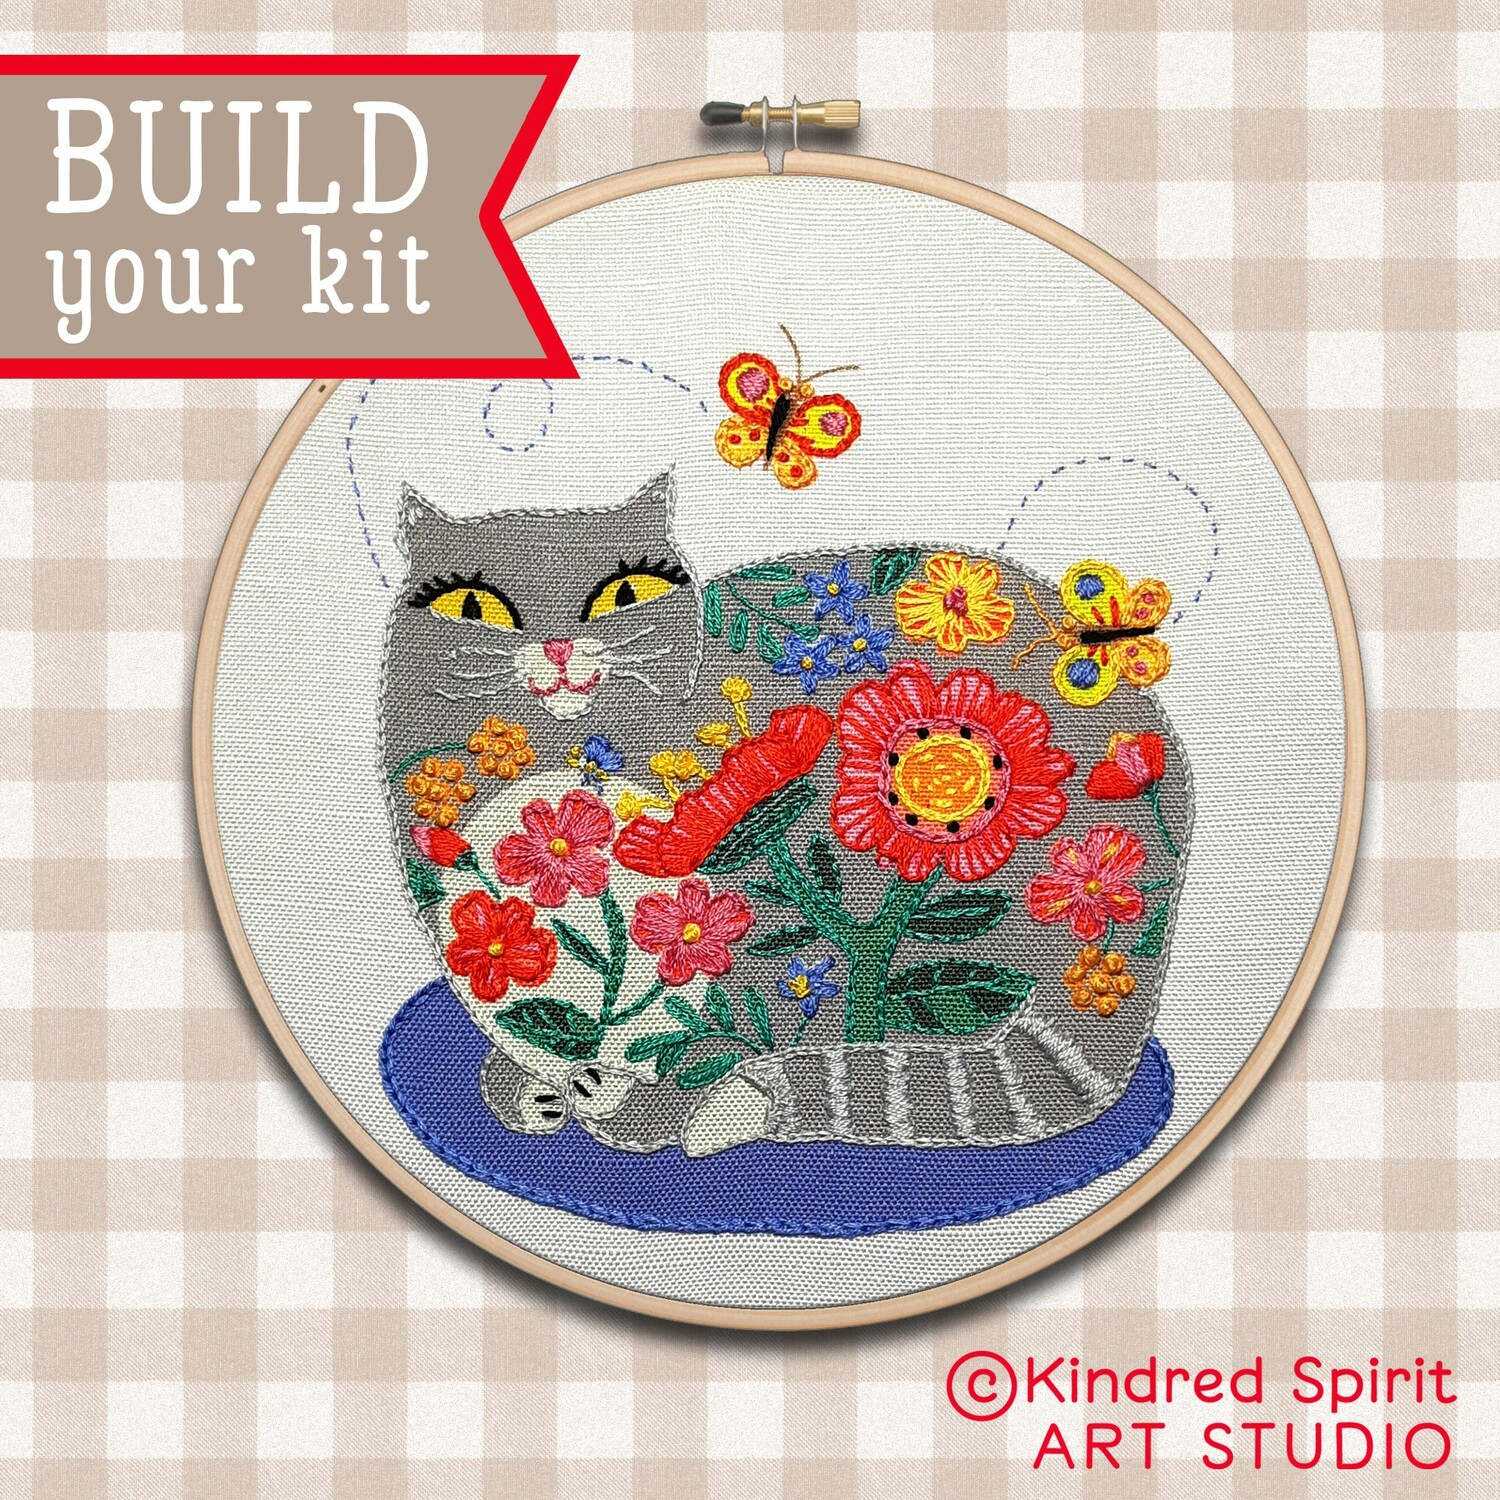 Grey Cat Hand Embroidery Kit  - Build your kit option - with hoop, without hoop or fabric print only